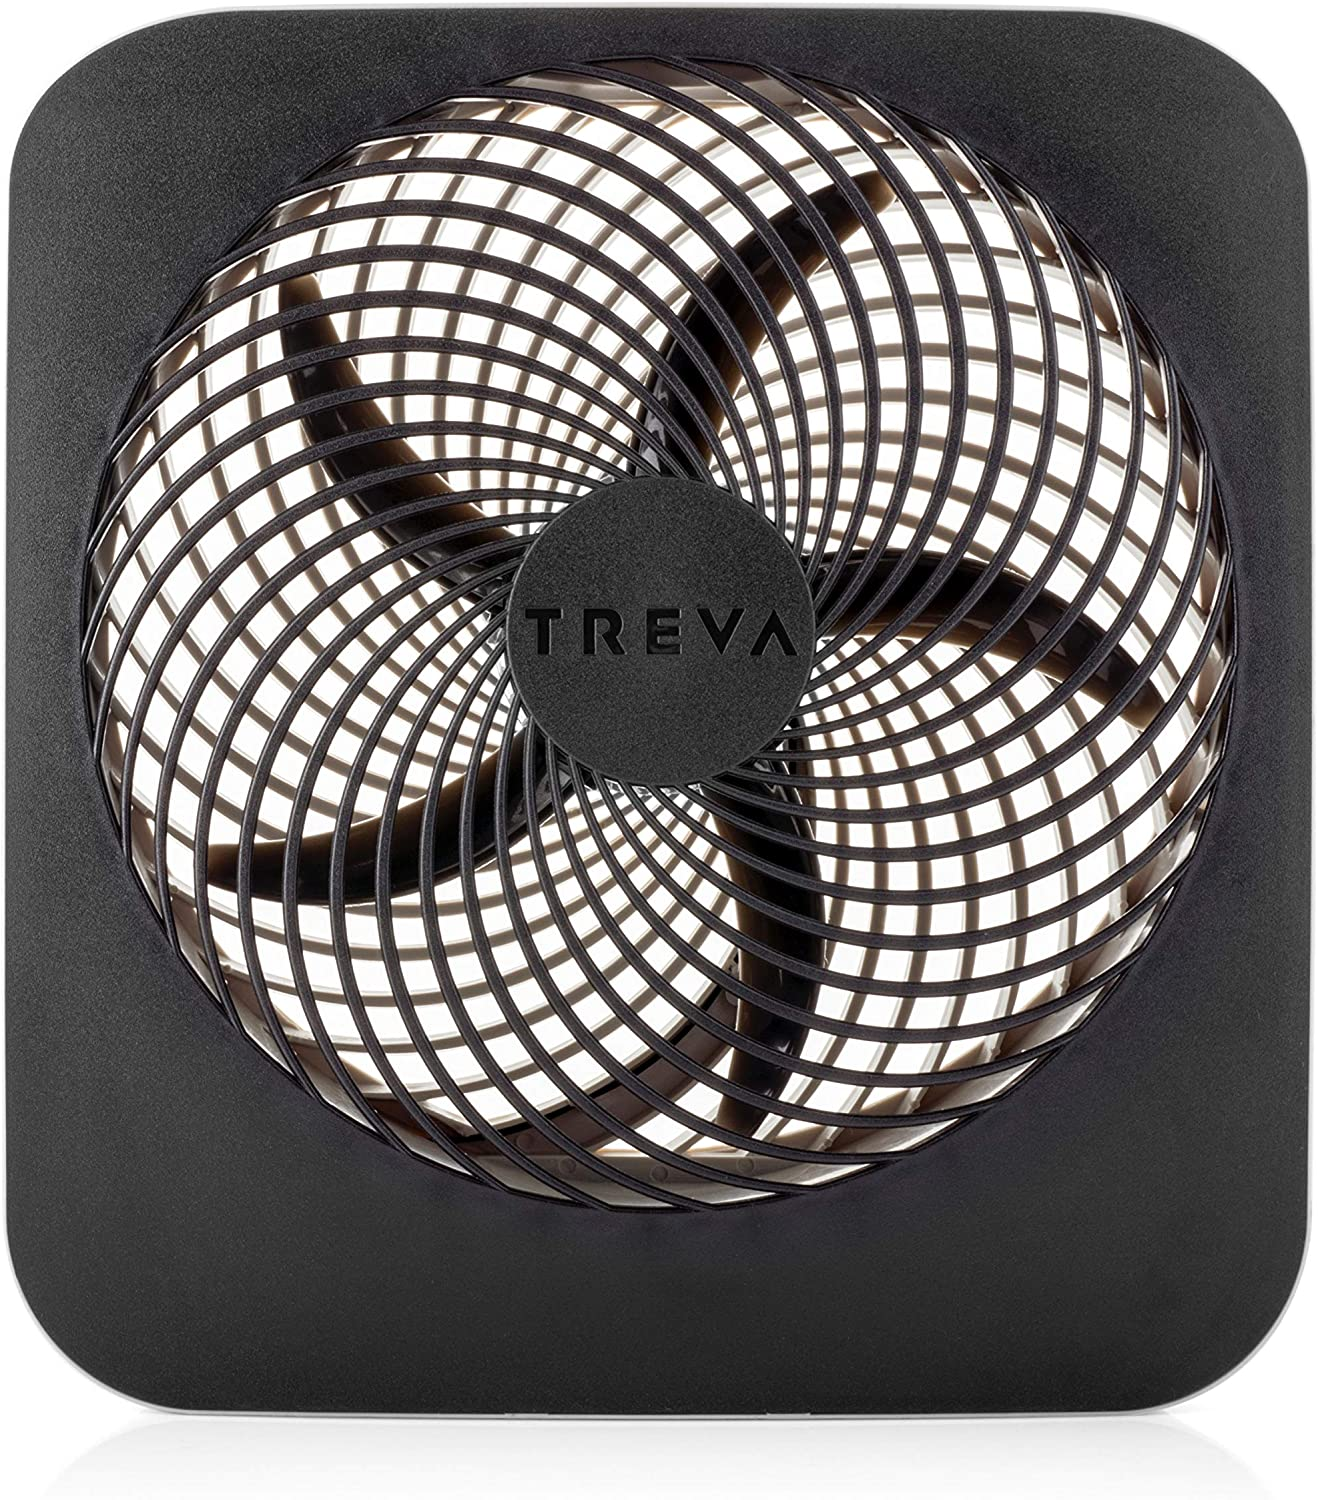 O2COOL Treva 10-Inch Portable Desktop Air Circulation Battery Powered Fan 2 Cooling Speeds with AC Adapter and USB Charging Port